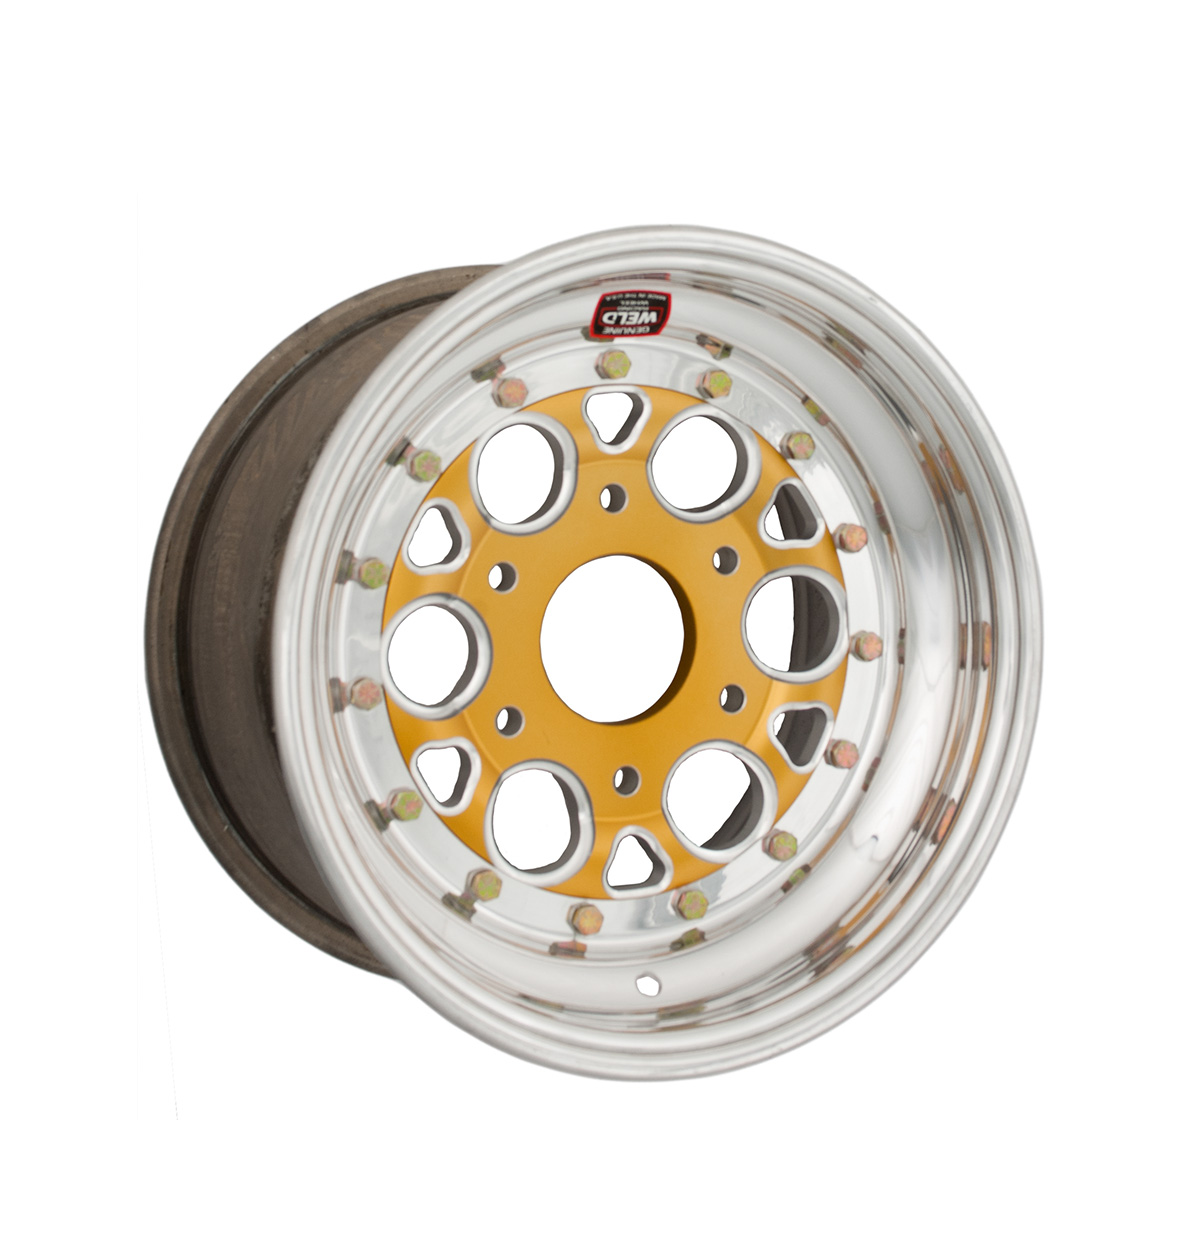 Midget racing wheels